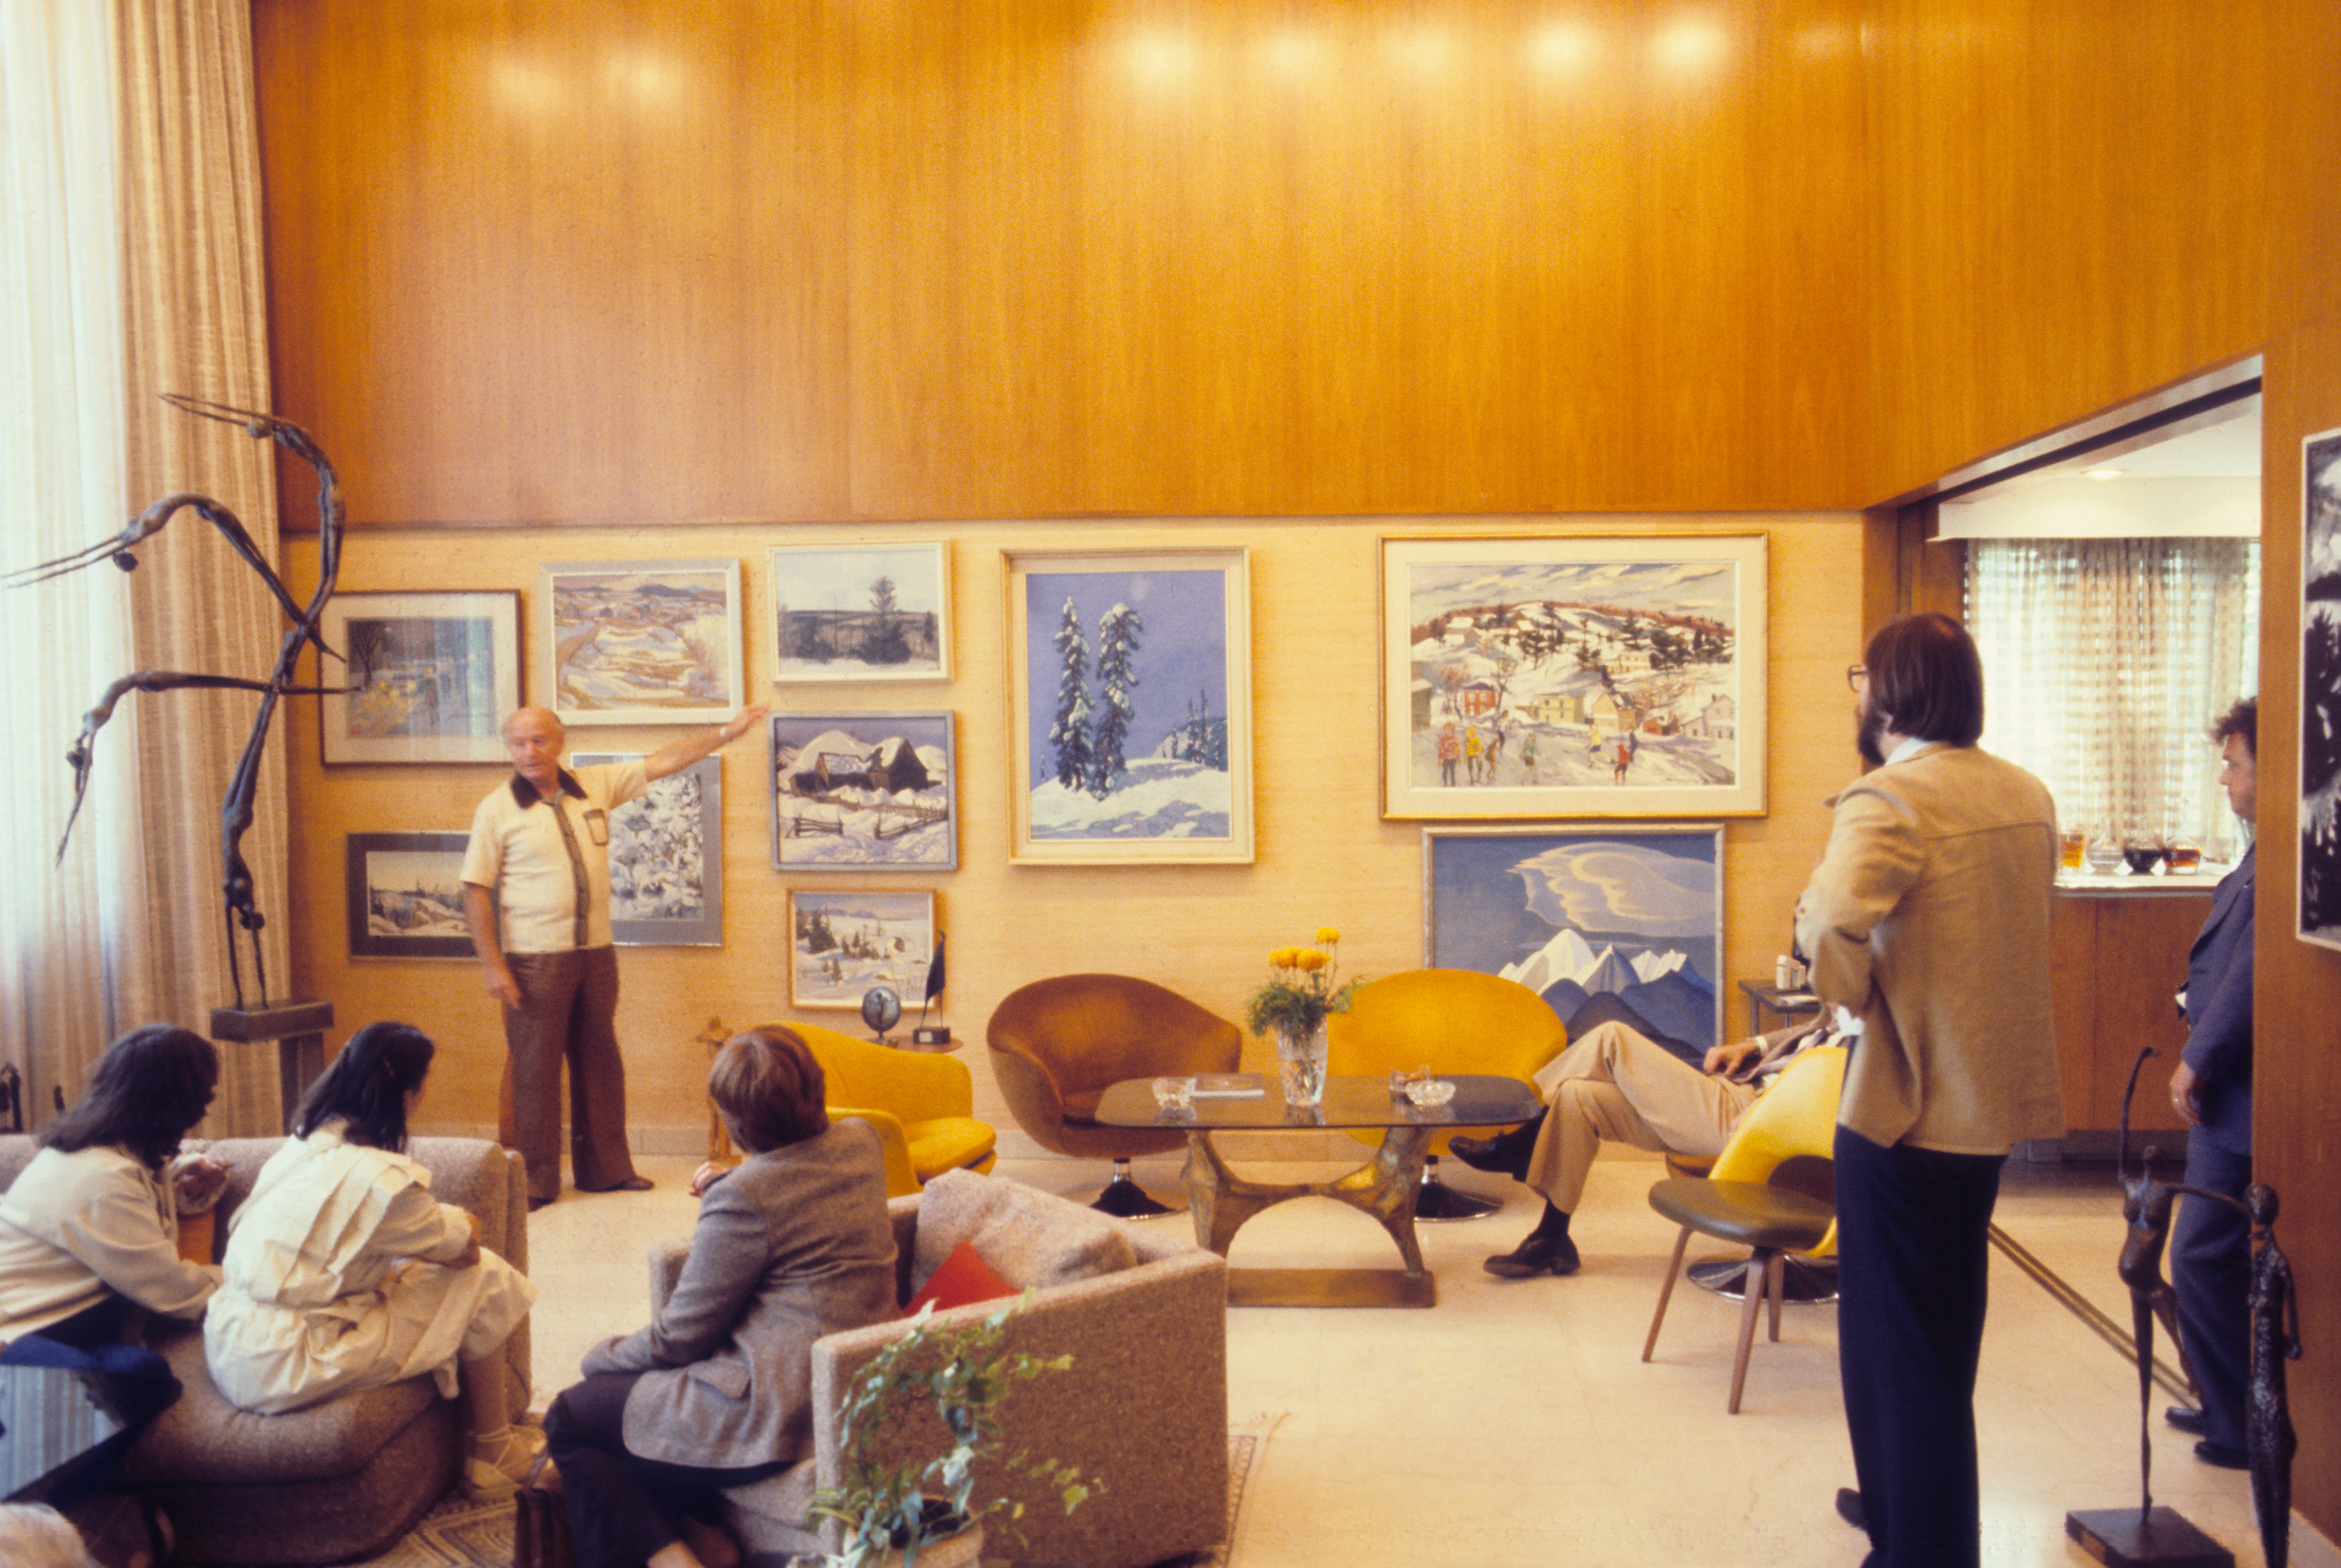 O. J. Firestone presents original Group of Sevens, displayed in his own home. (Photo courtesy of the OAG)